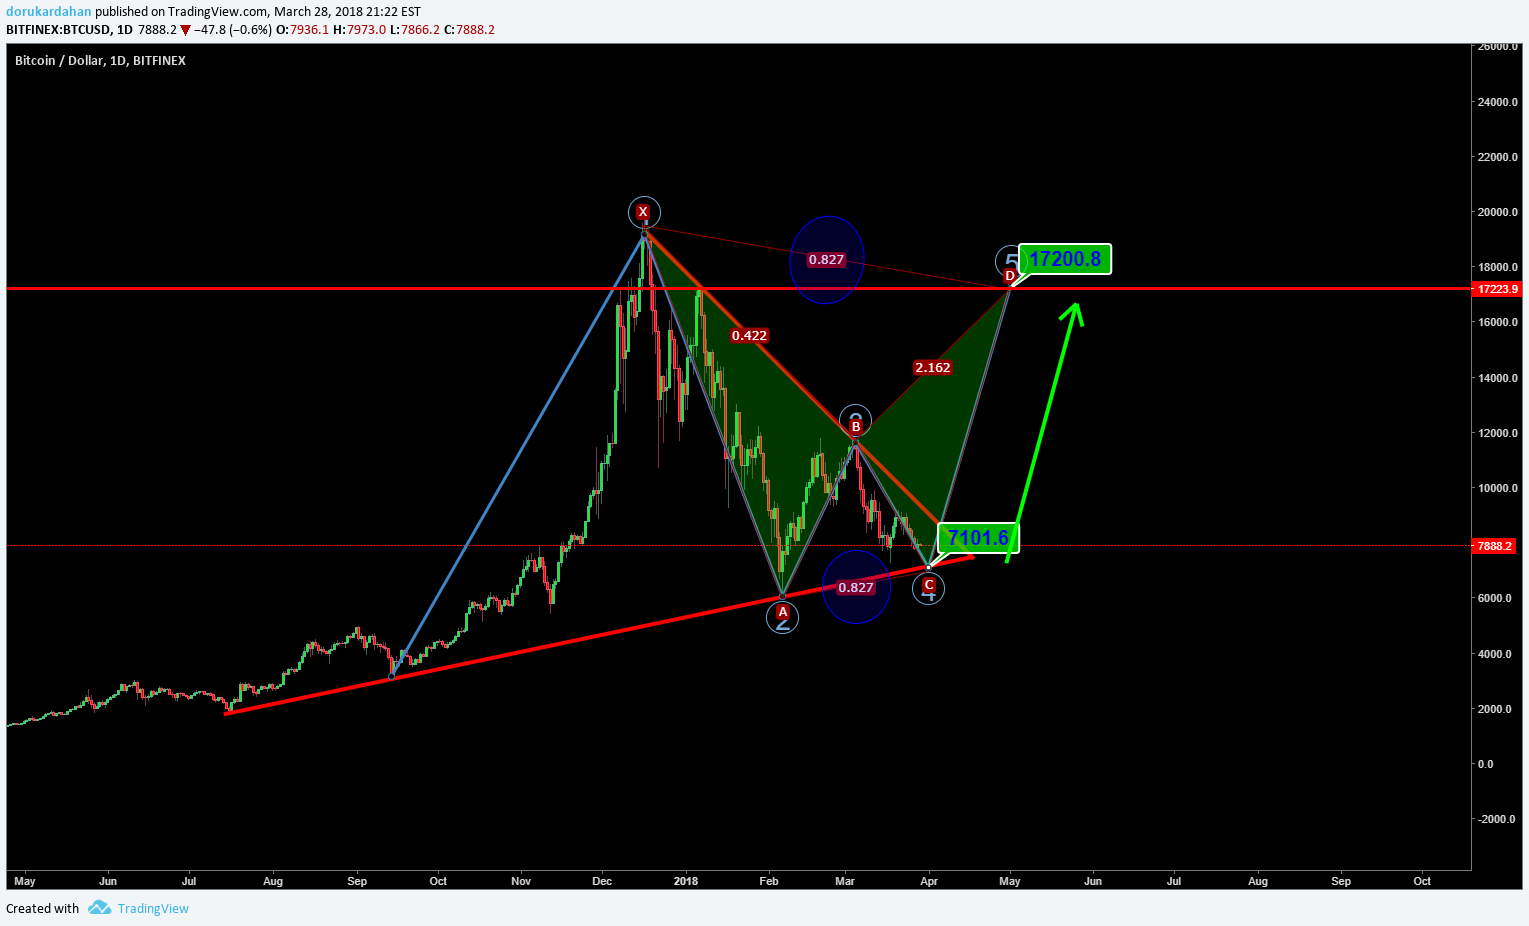 Bitcoin: Buy Signal! for BITSTAMP:BTCUSD by Technician — TradingView